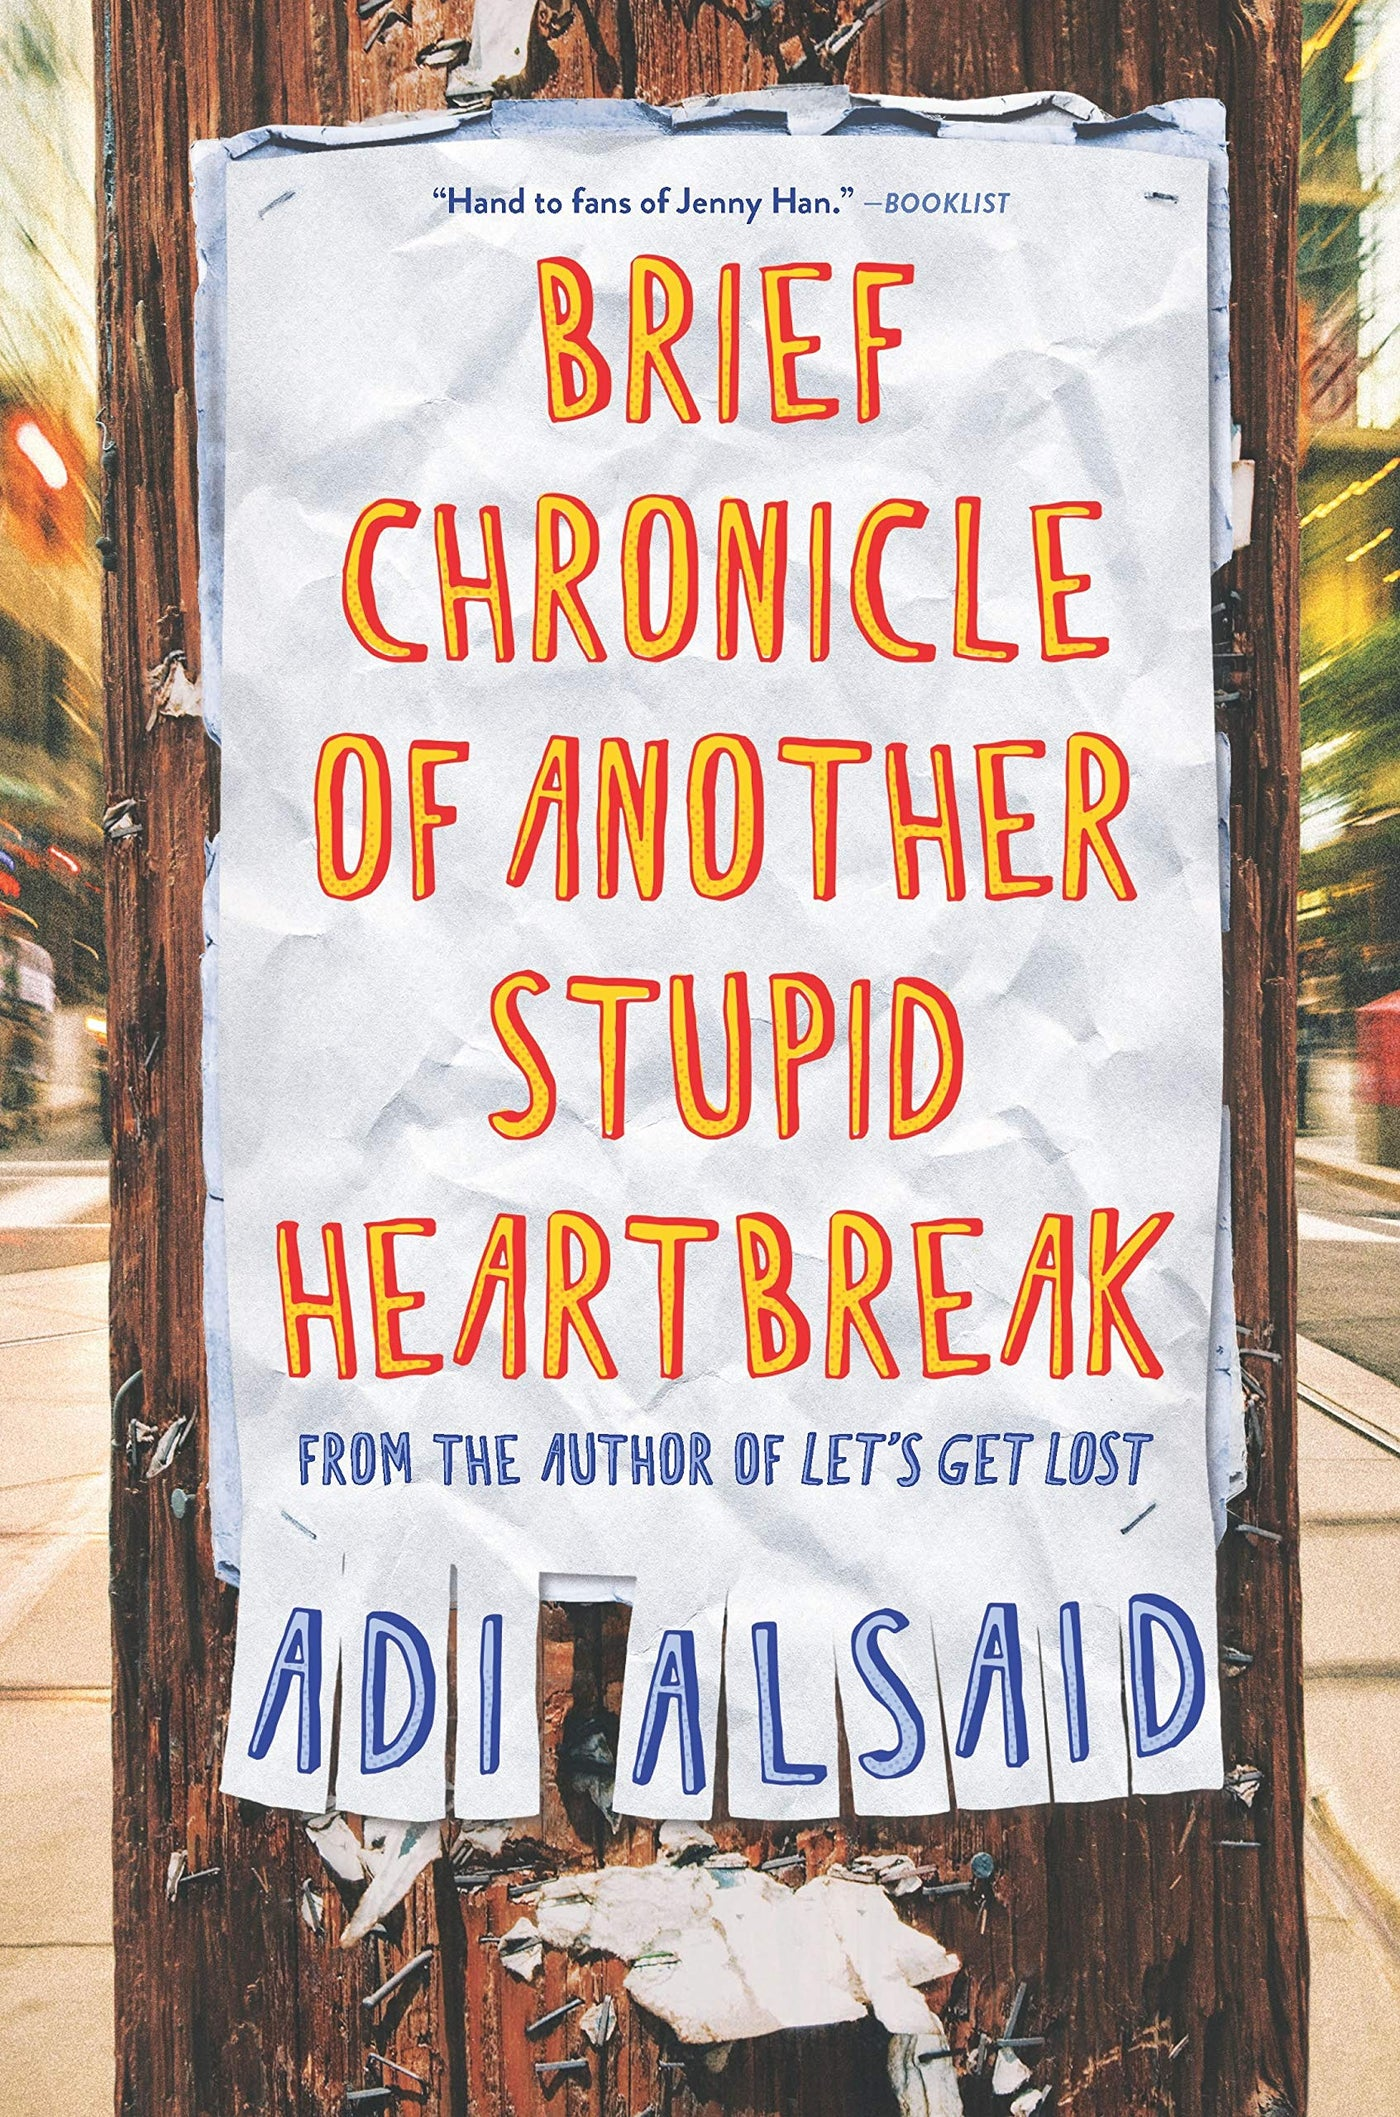 Brief Chronicle of Another Stupid Heartbreak by Adi Alsaid